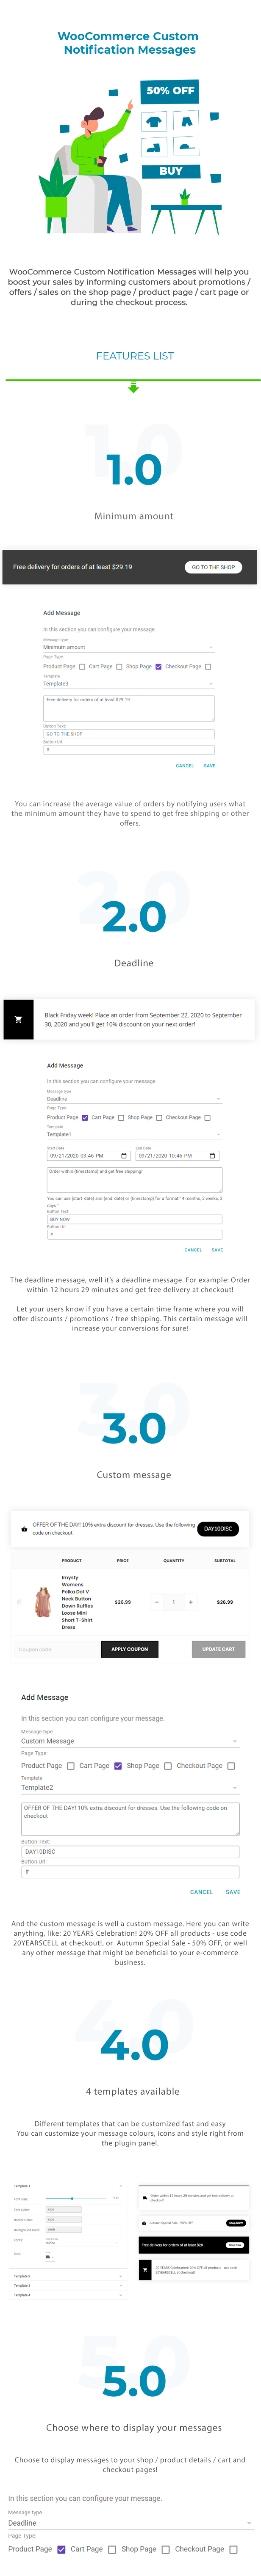 WooCommerce Custom Notification Messages for Shop / Products / Cart / Checkout Pages - 1 WooCommerce Custom Notification Messages for Shop / Products / Cart / Checkout Pages - cartmessages - WooCommerce Custom Notification Messages for Shop / Products / Cart / Checkout Pages